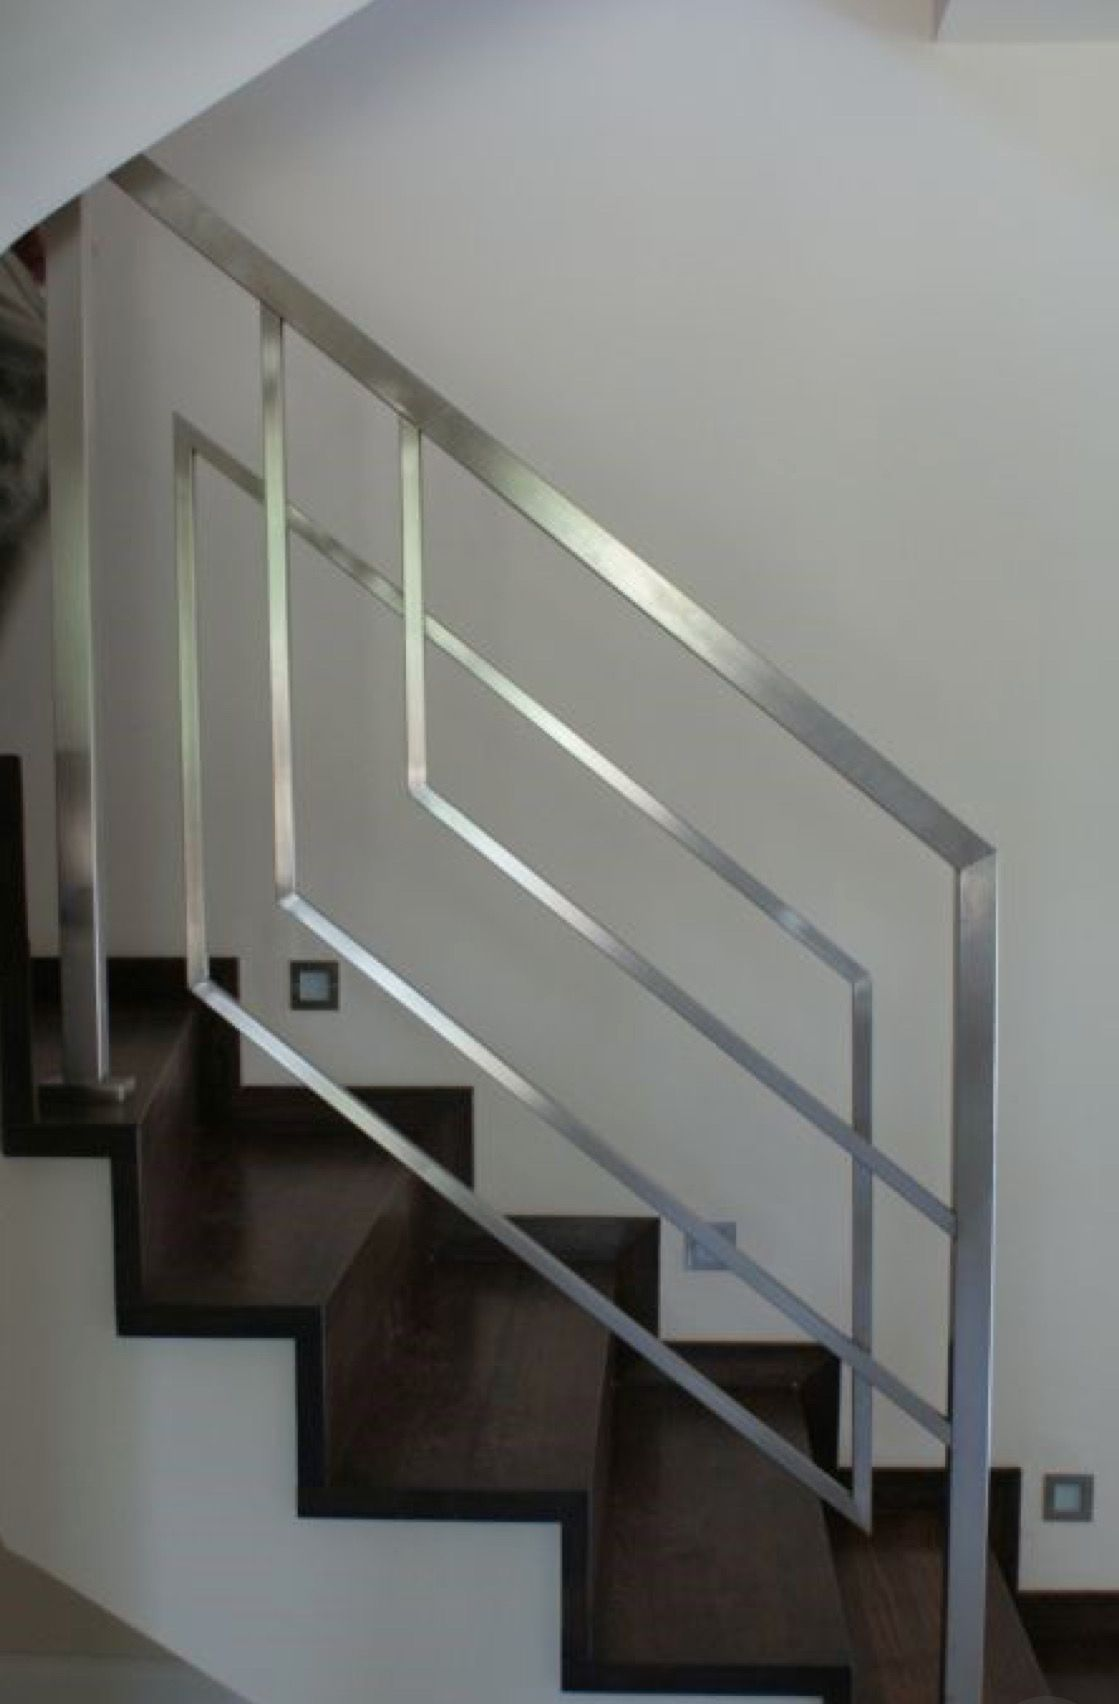 Pin By U Nyi Nyi On House Stairs Stair Railing Design Steel Railing Design Stairs Design Interior